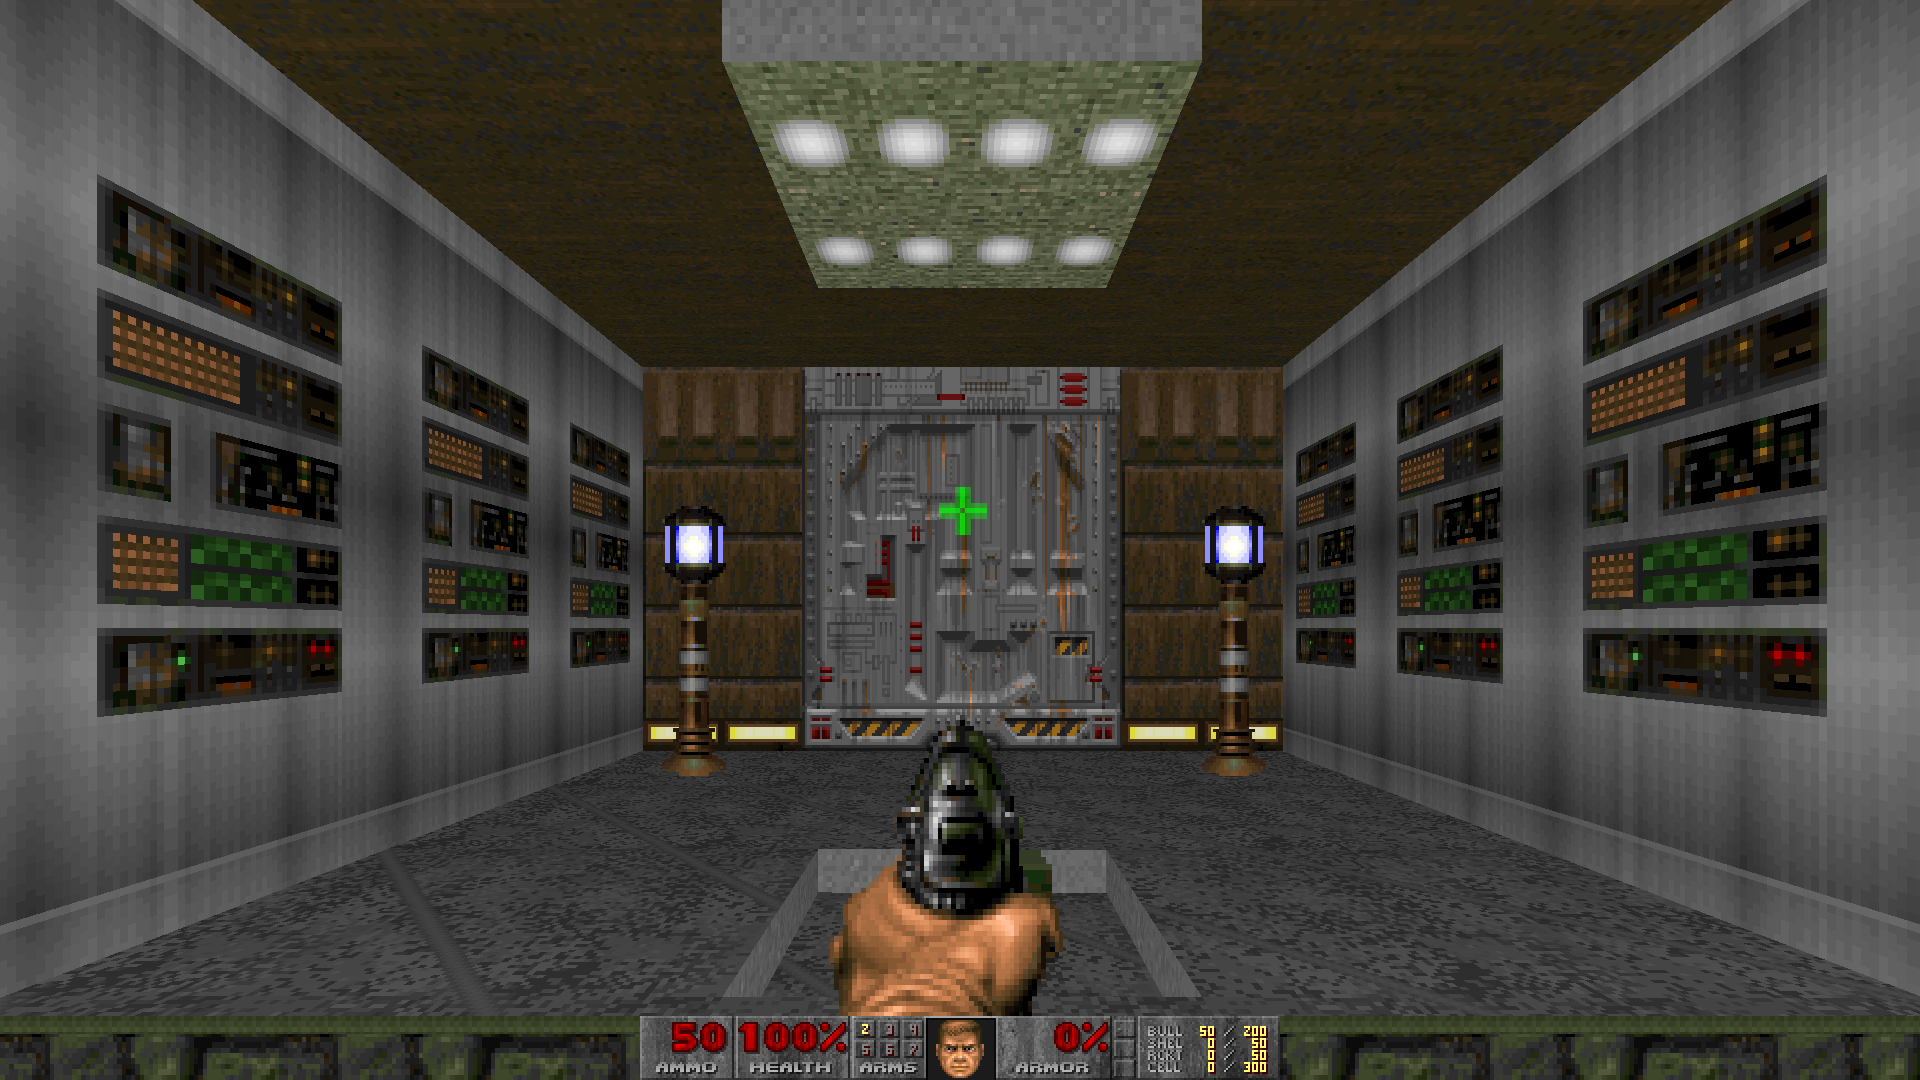 Screenshot_Doom_20210222_233032.png.cb4c5022a49e4361d417f83688f978be.png